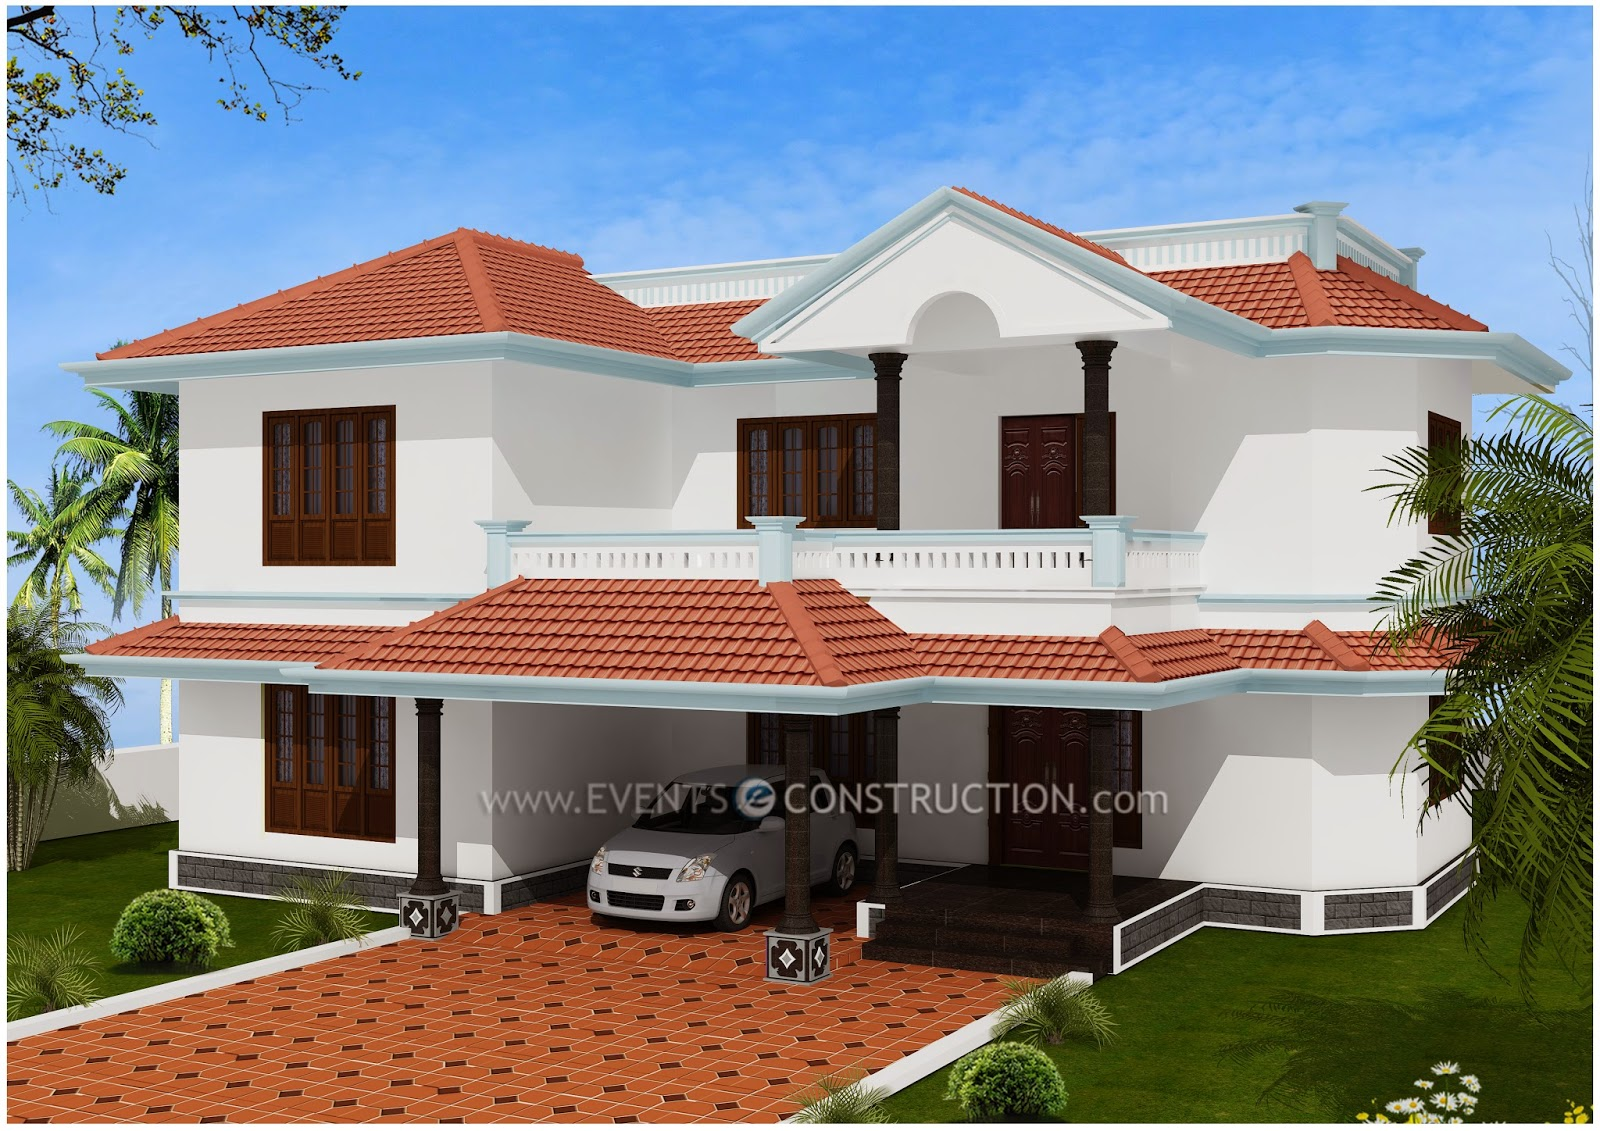 Evens construction pvt ltd simple kerala house design for Minimalist house kerala